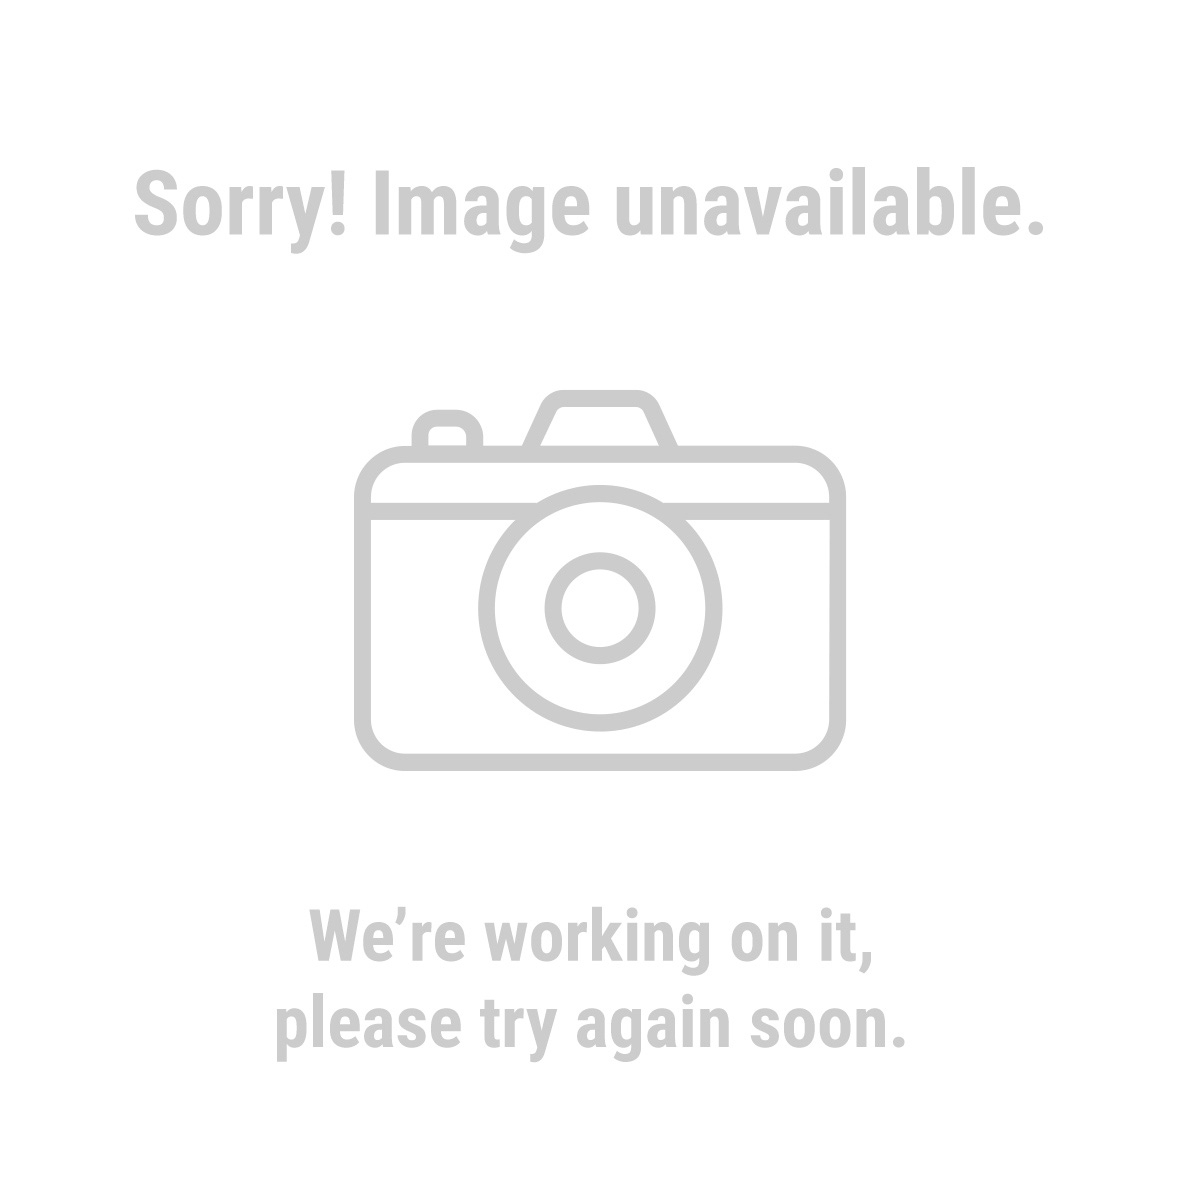 Windsor Design 97544 No. 33 Bench Plane